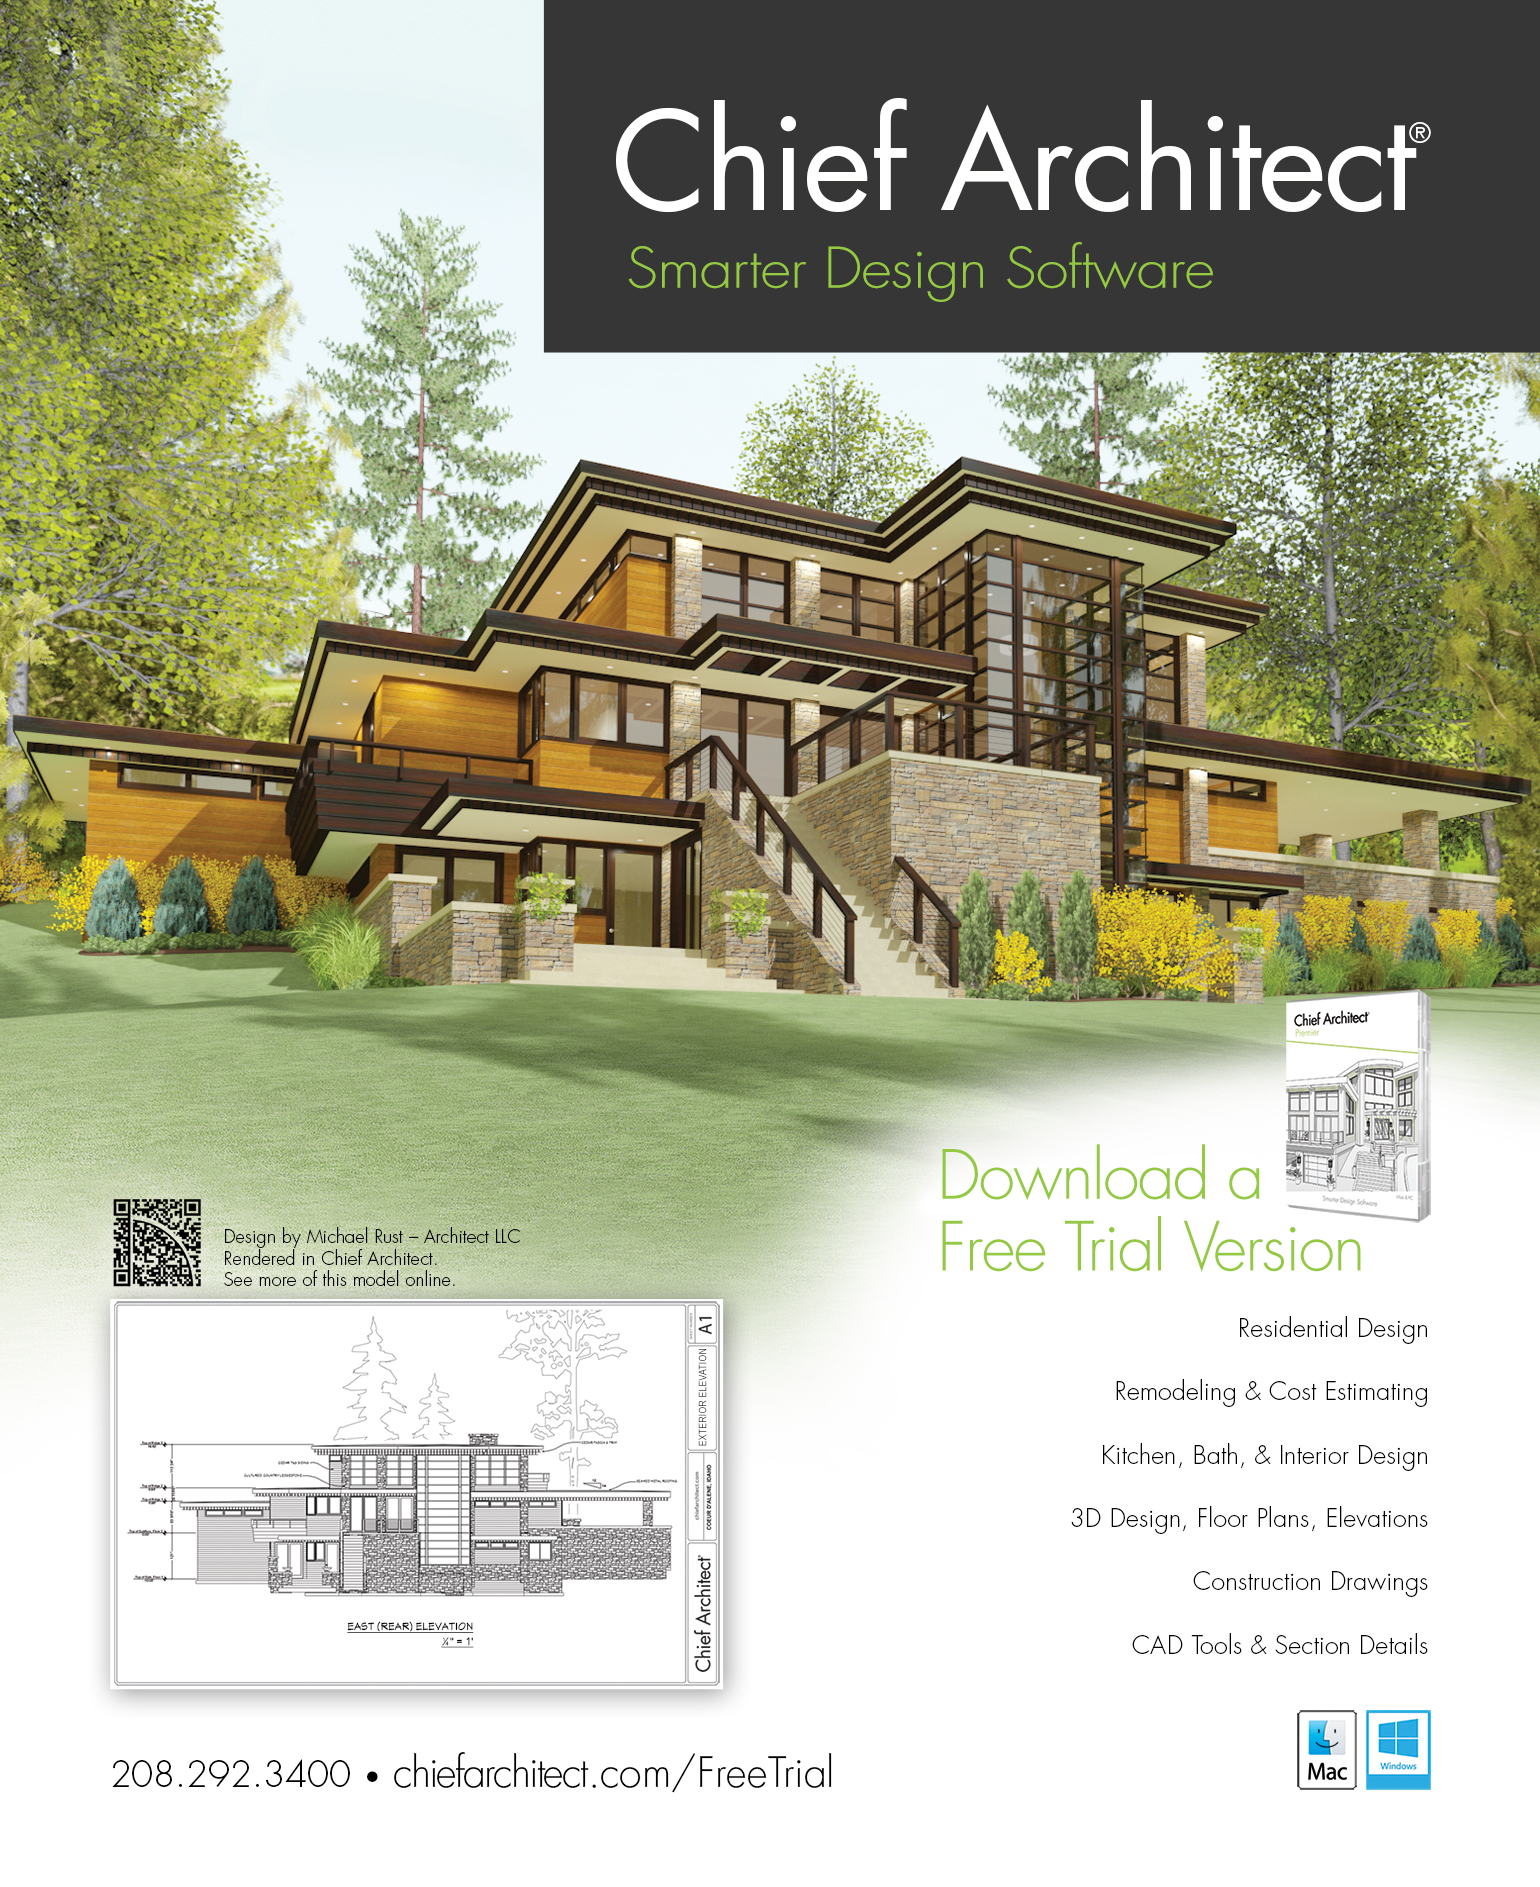 Home Design Magazine Ads